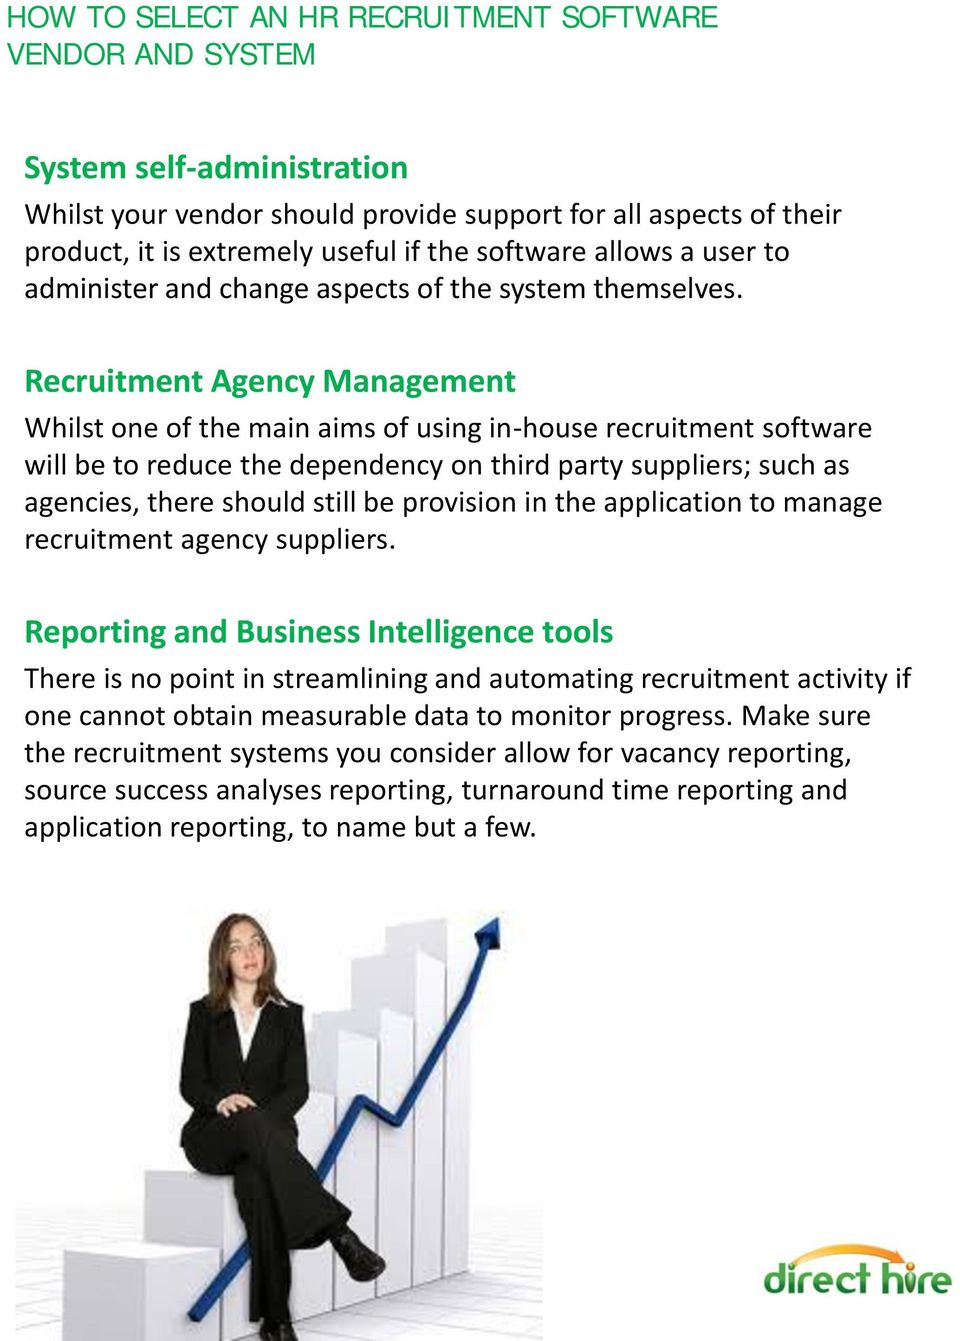 Recruitment Agency Management Whilst one of the main aims of using in-house recruitment software will be to reduce the dependency on third party suppliers; such as agencies, there should still be